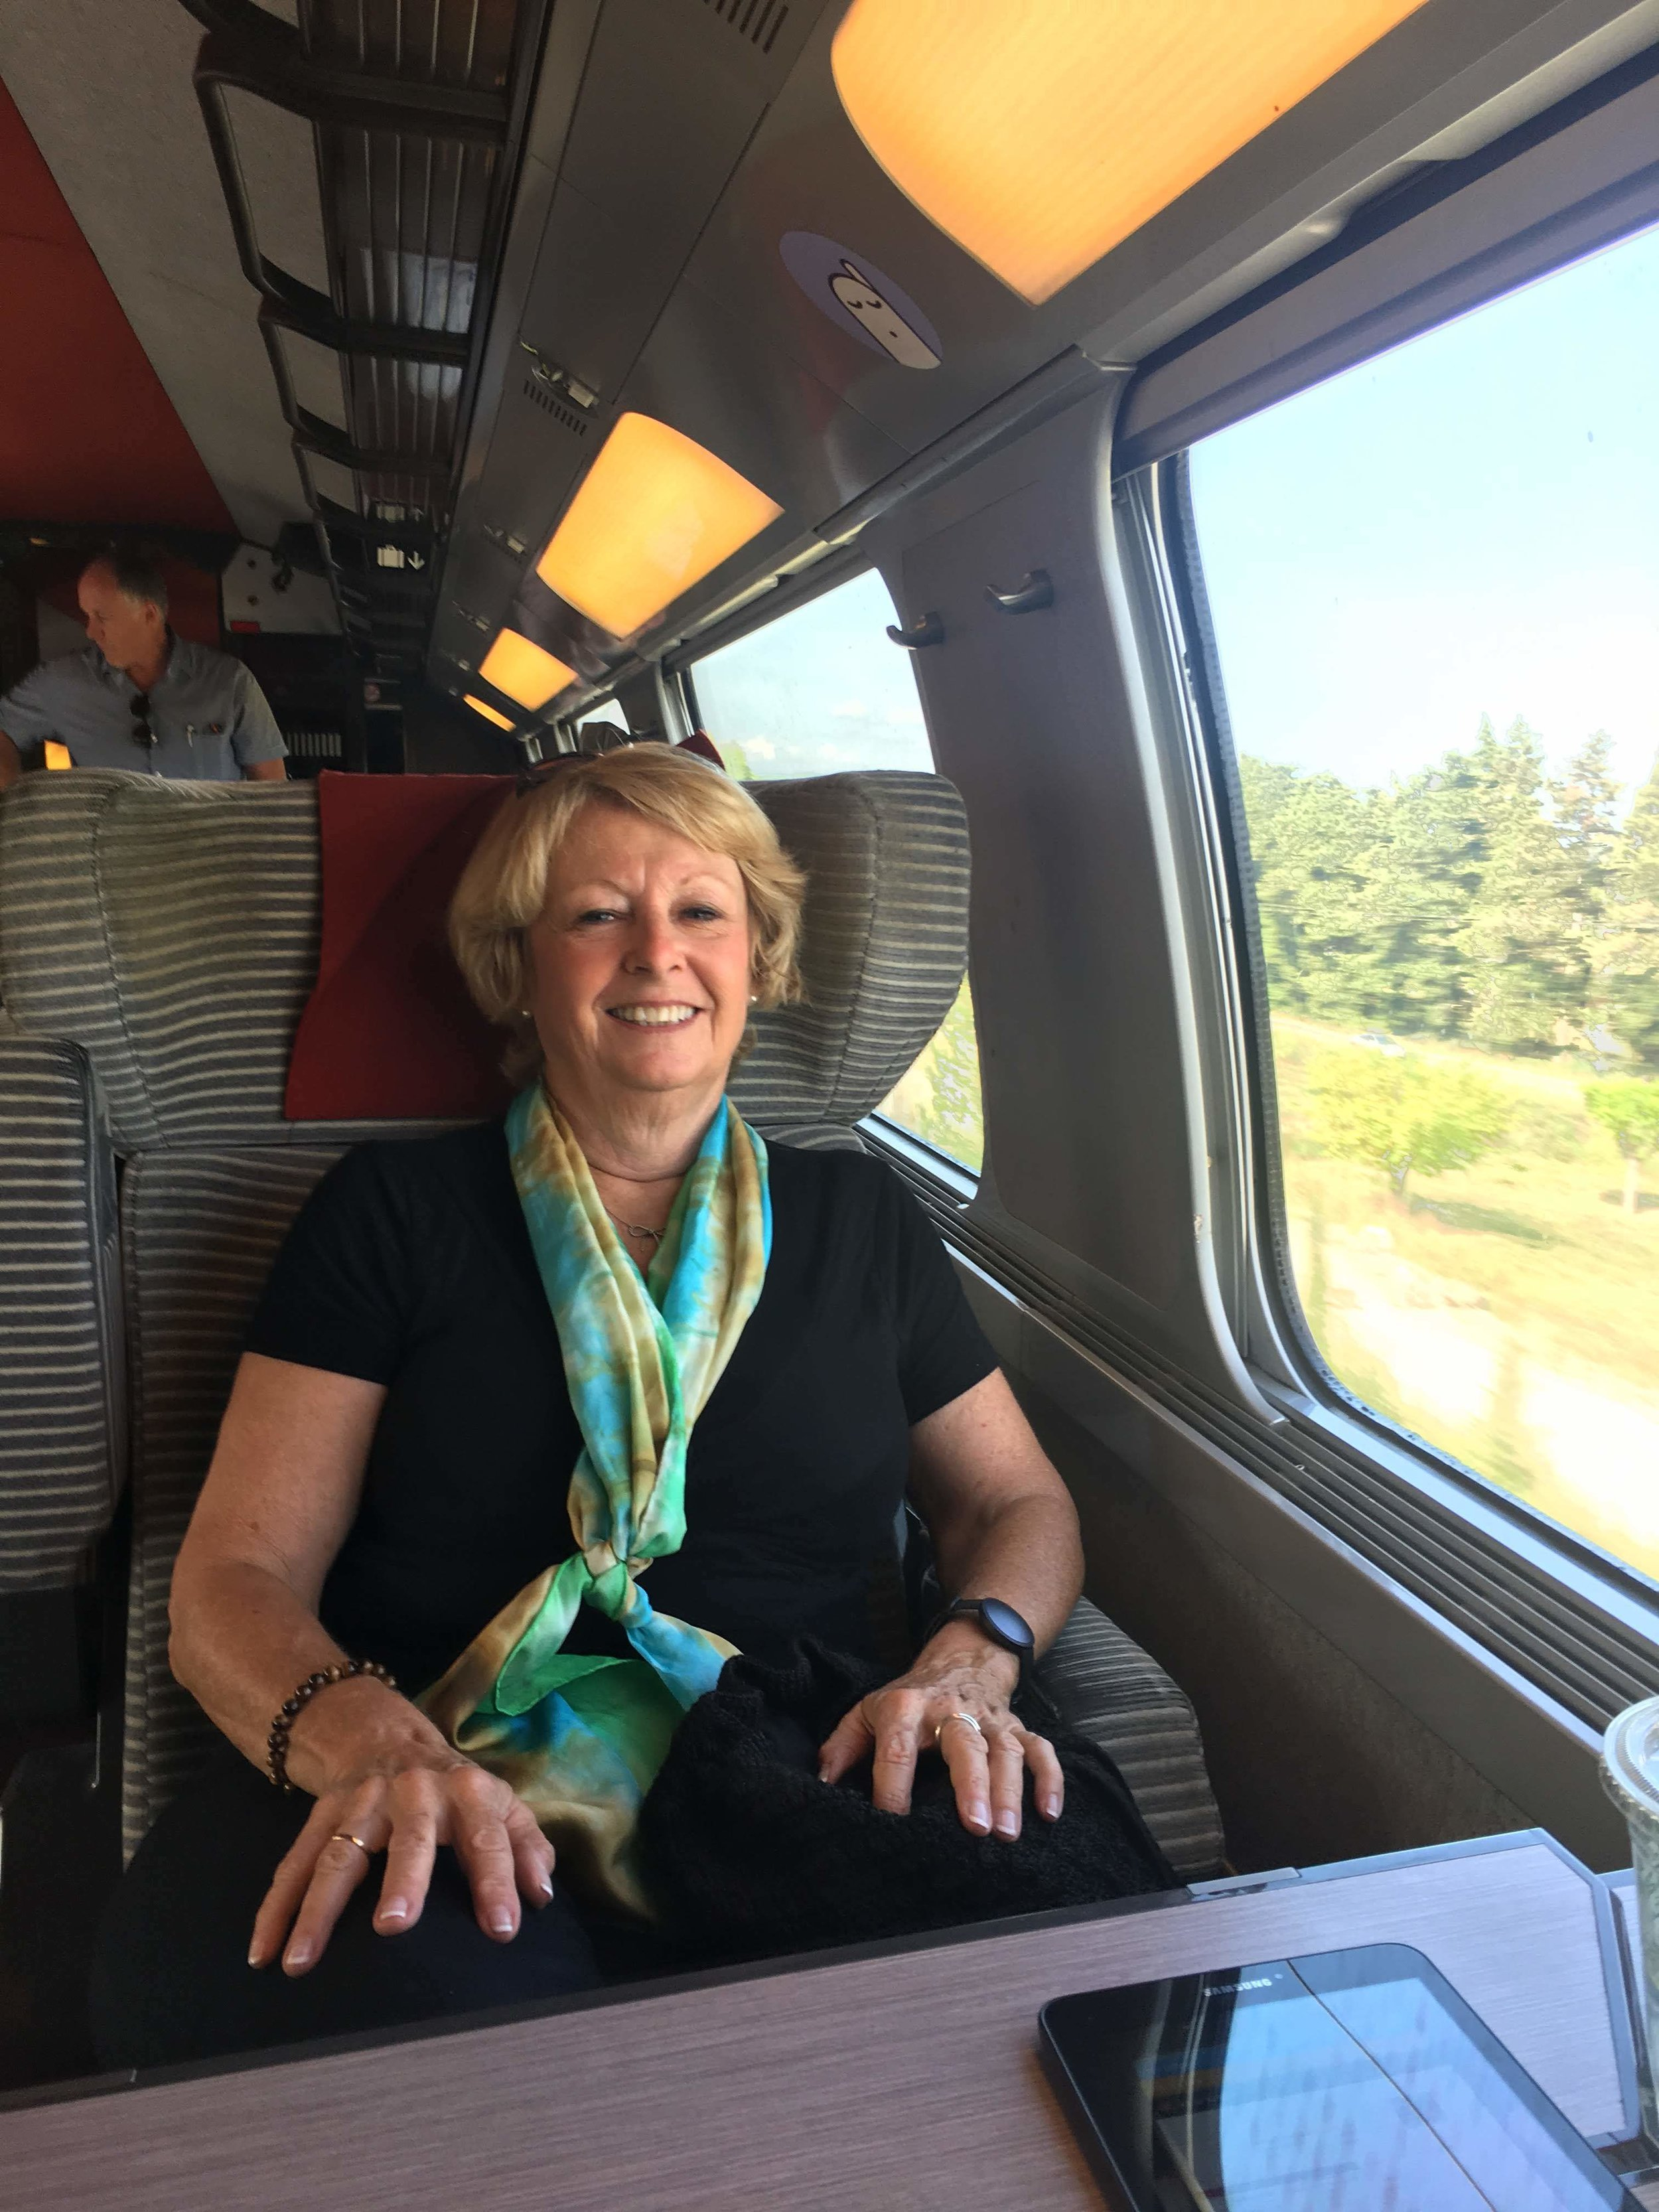 Carol settled right into the comforts of first class train travel